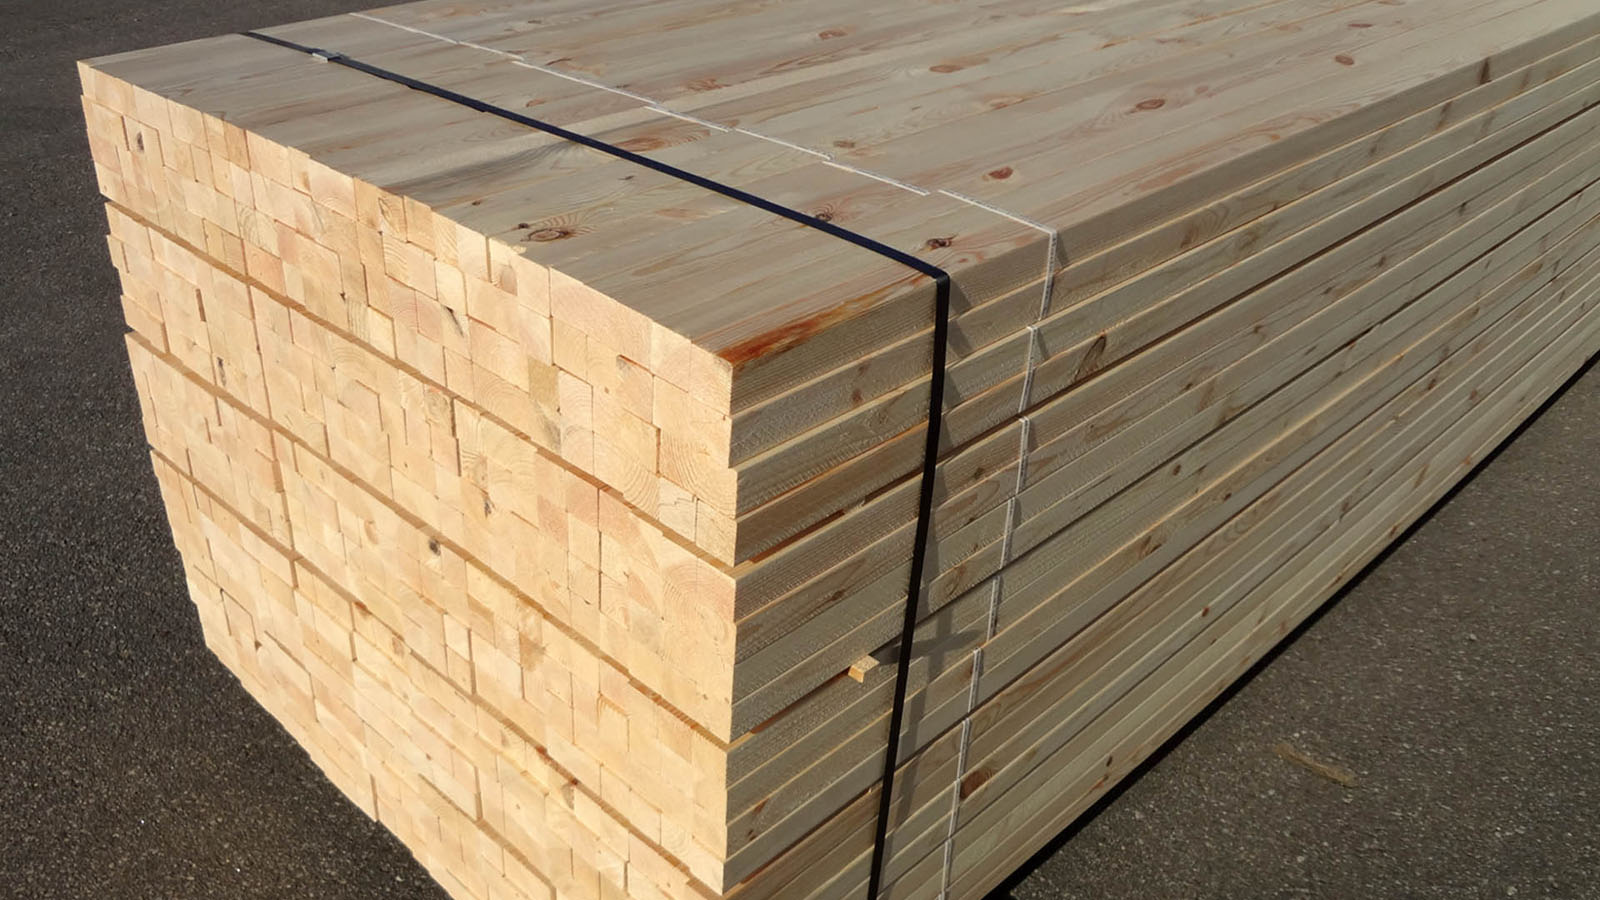 2-wall-studs-mabashira-nothern-europe-timber-production-lameko-impex